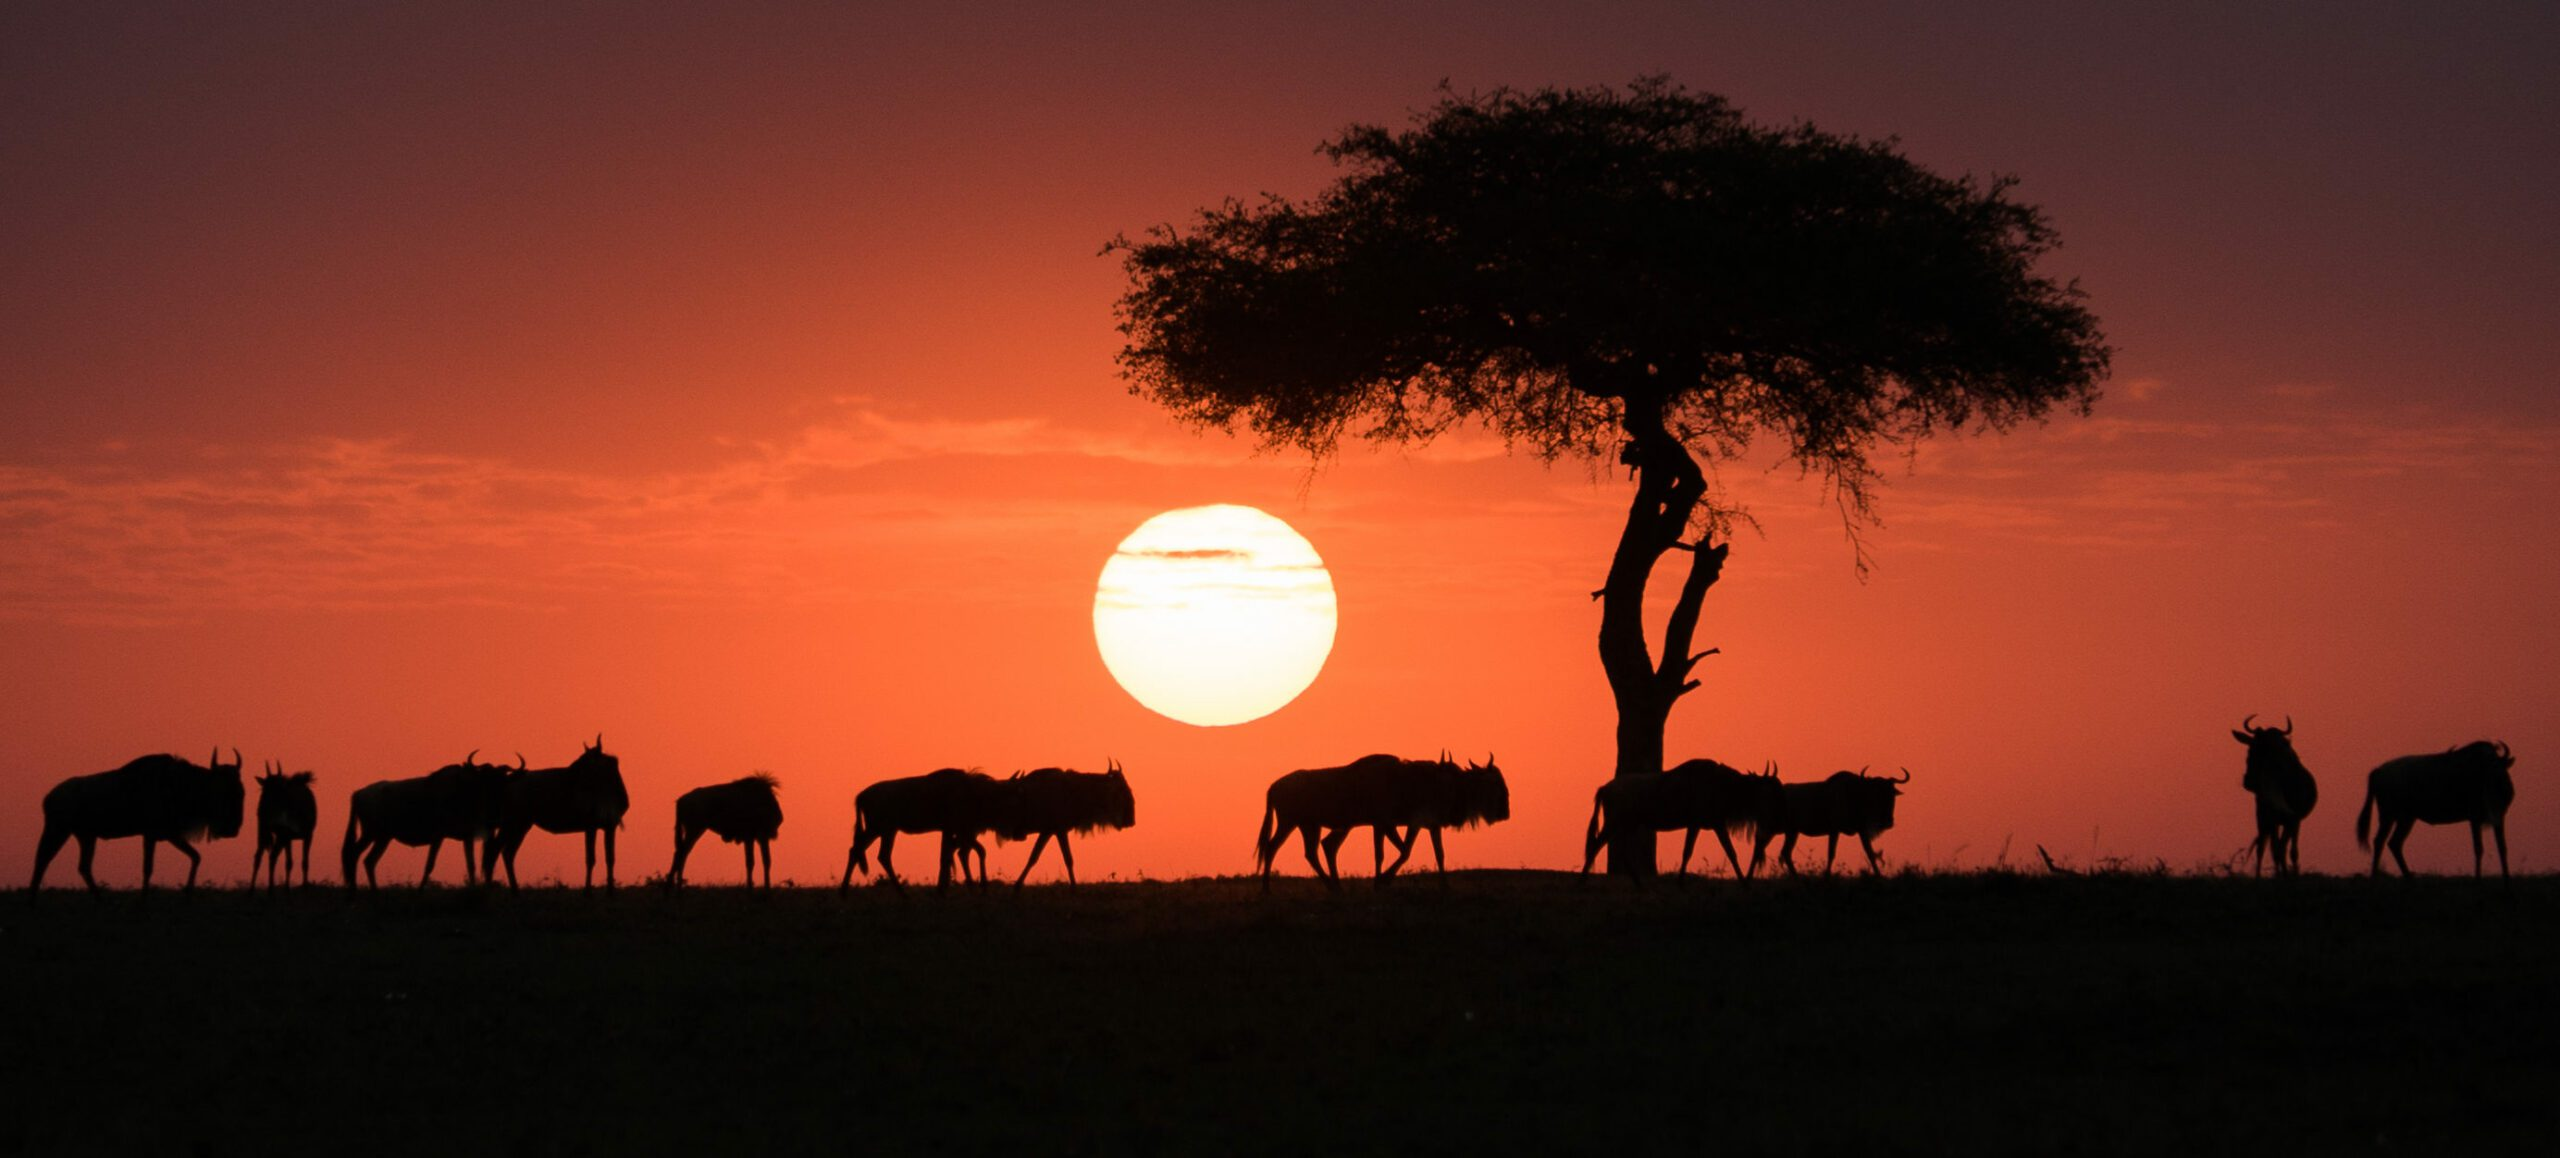 On an Africa safari you'll see wildebeest walking across the horizon toward an acacia at sunset in the Maasai Mara